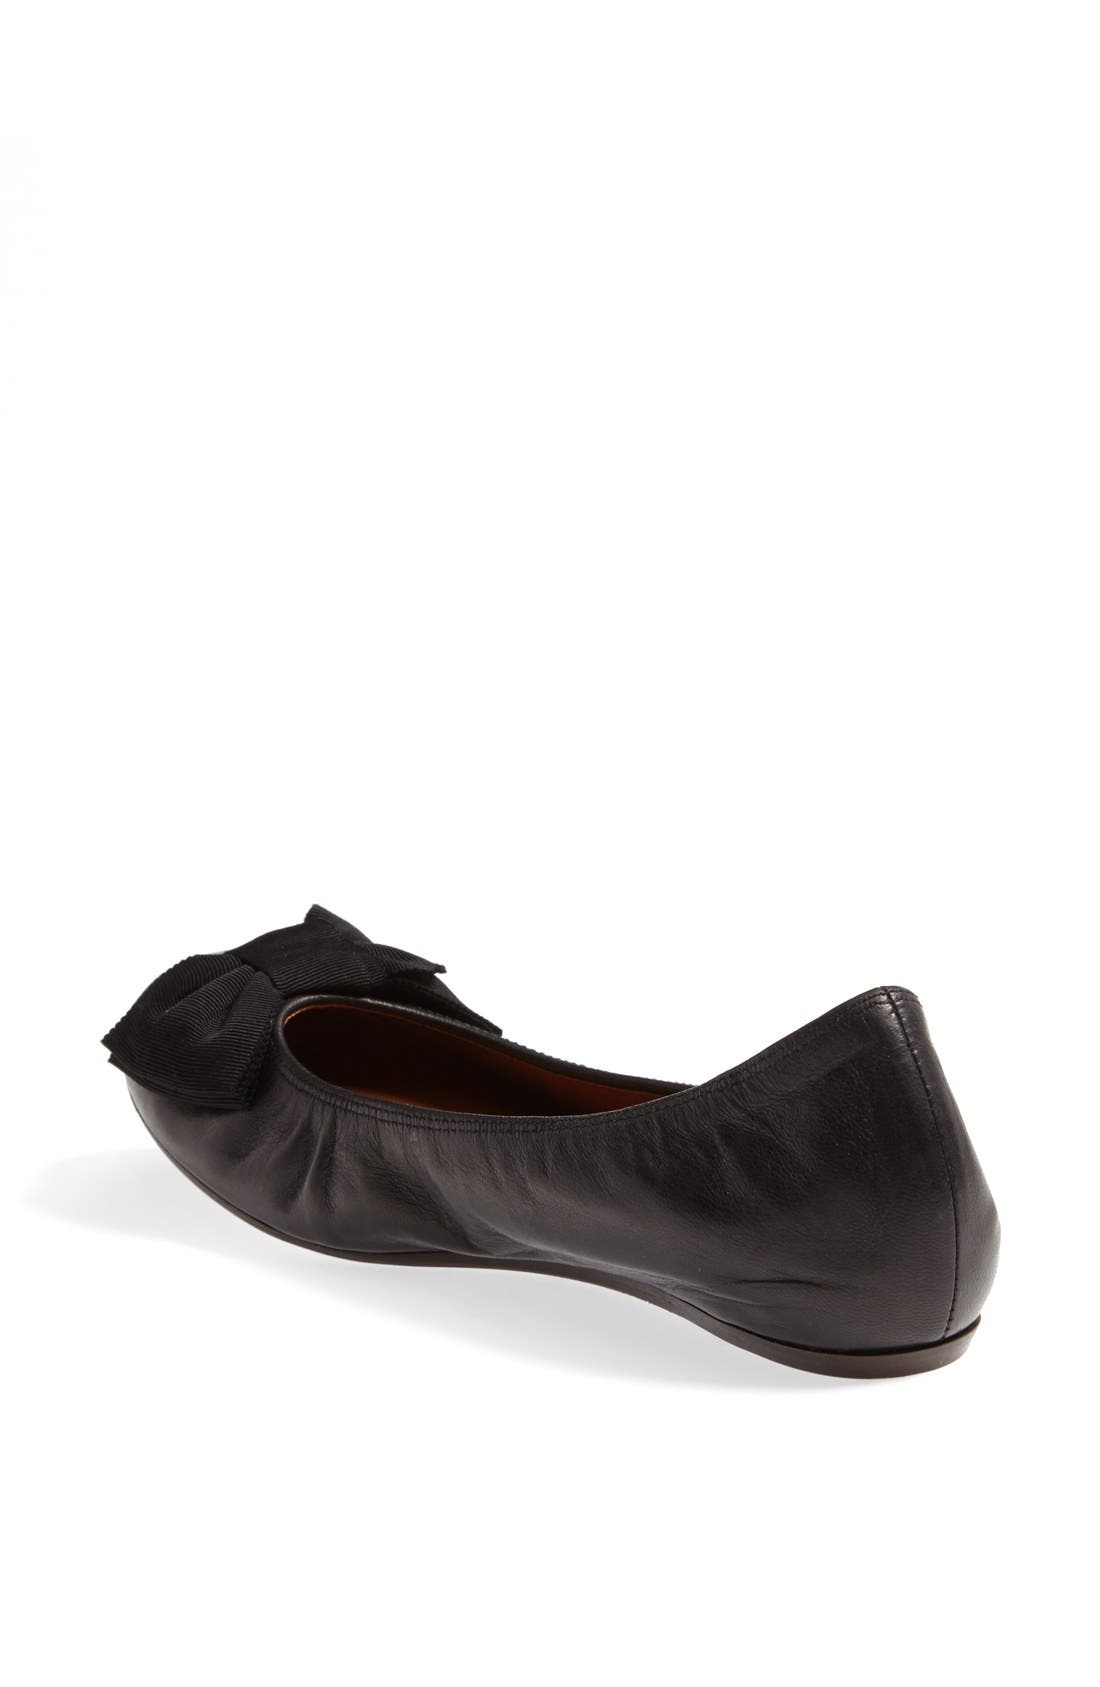 Alternate Image 2  - Lanvin Bow Ballerina Flat (Women)